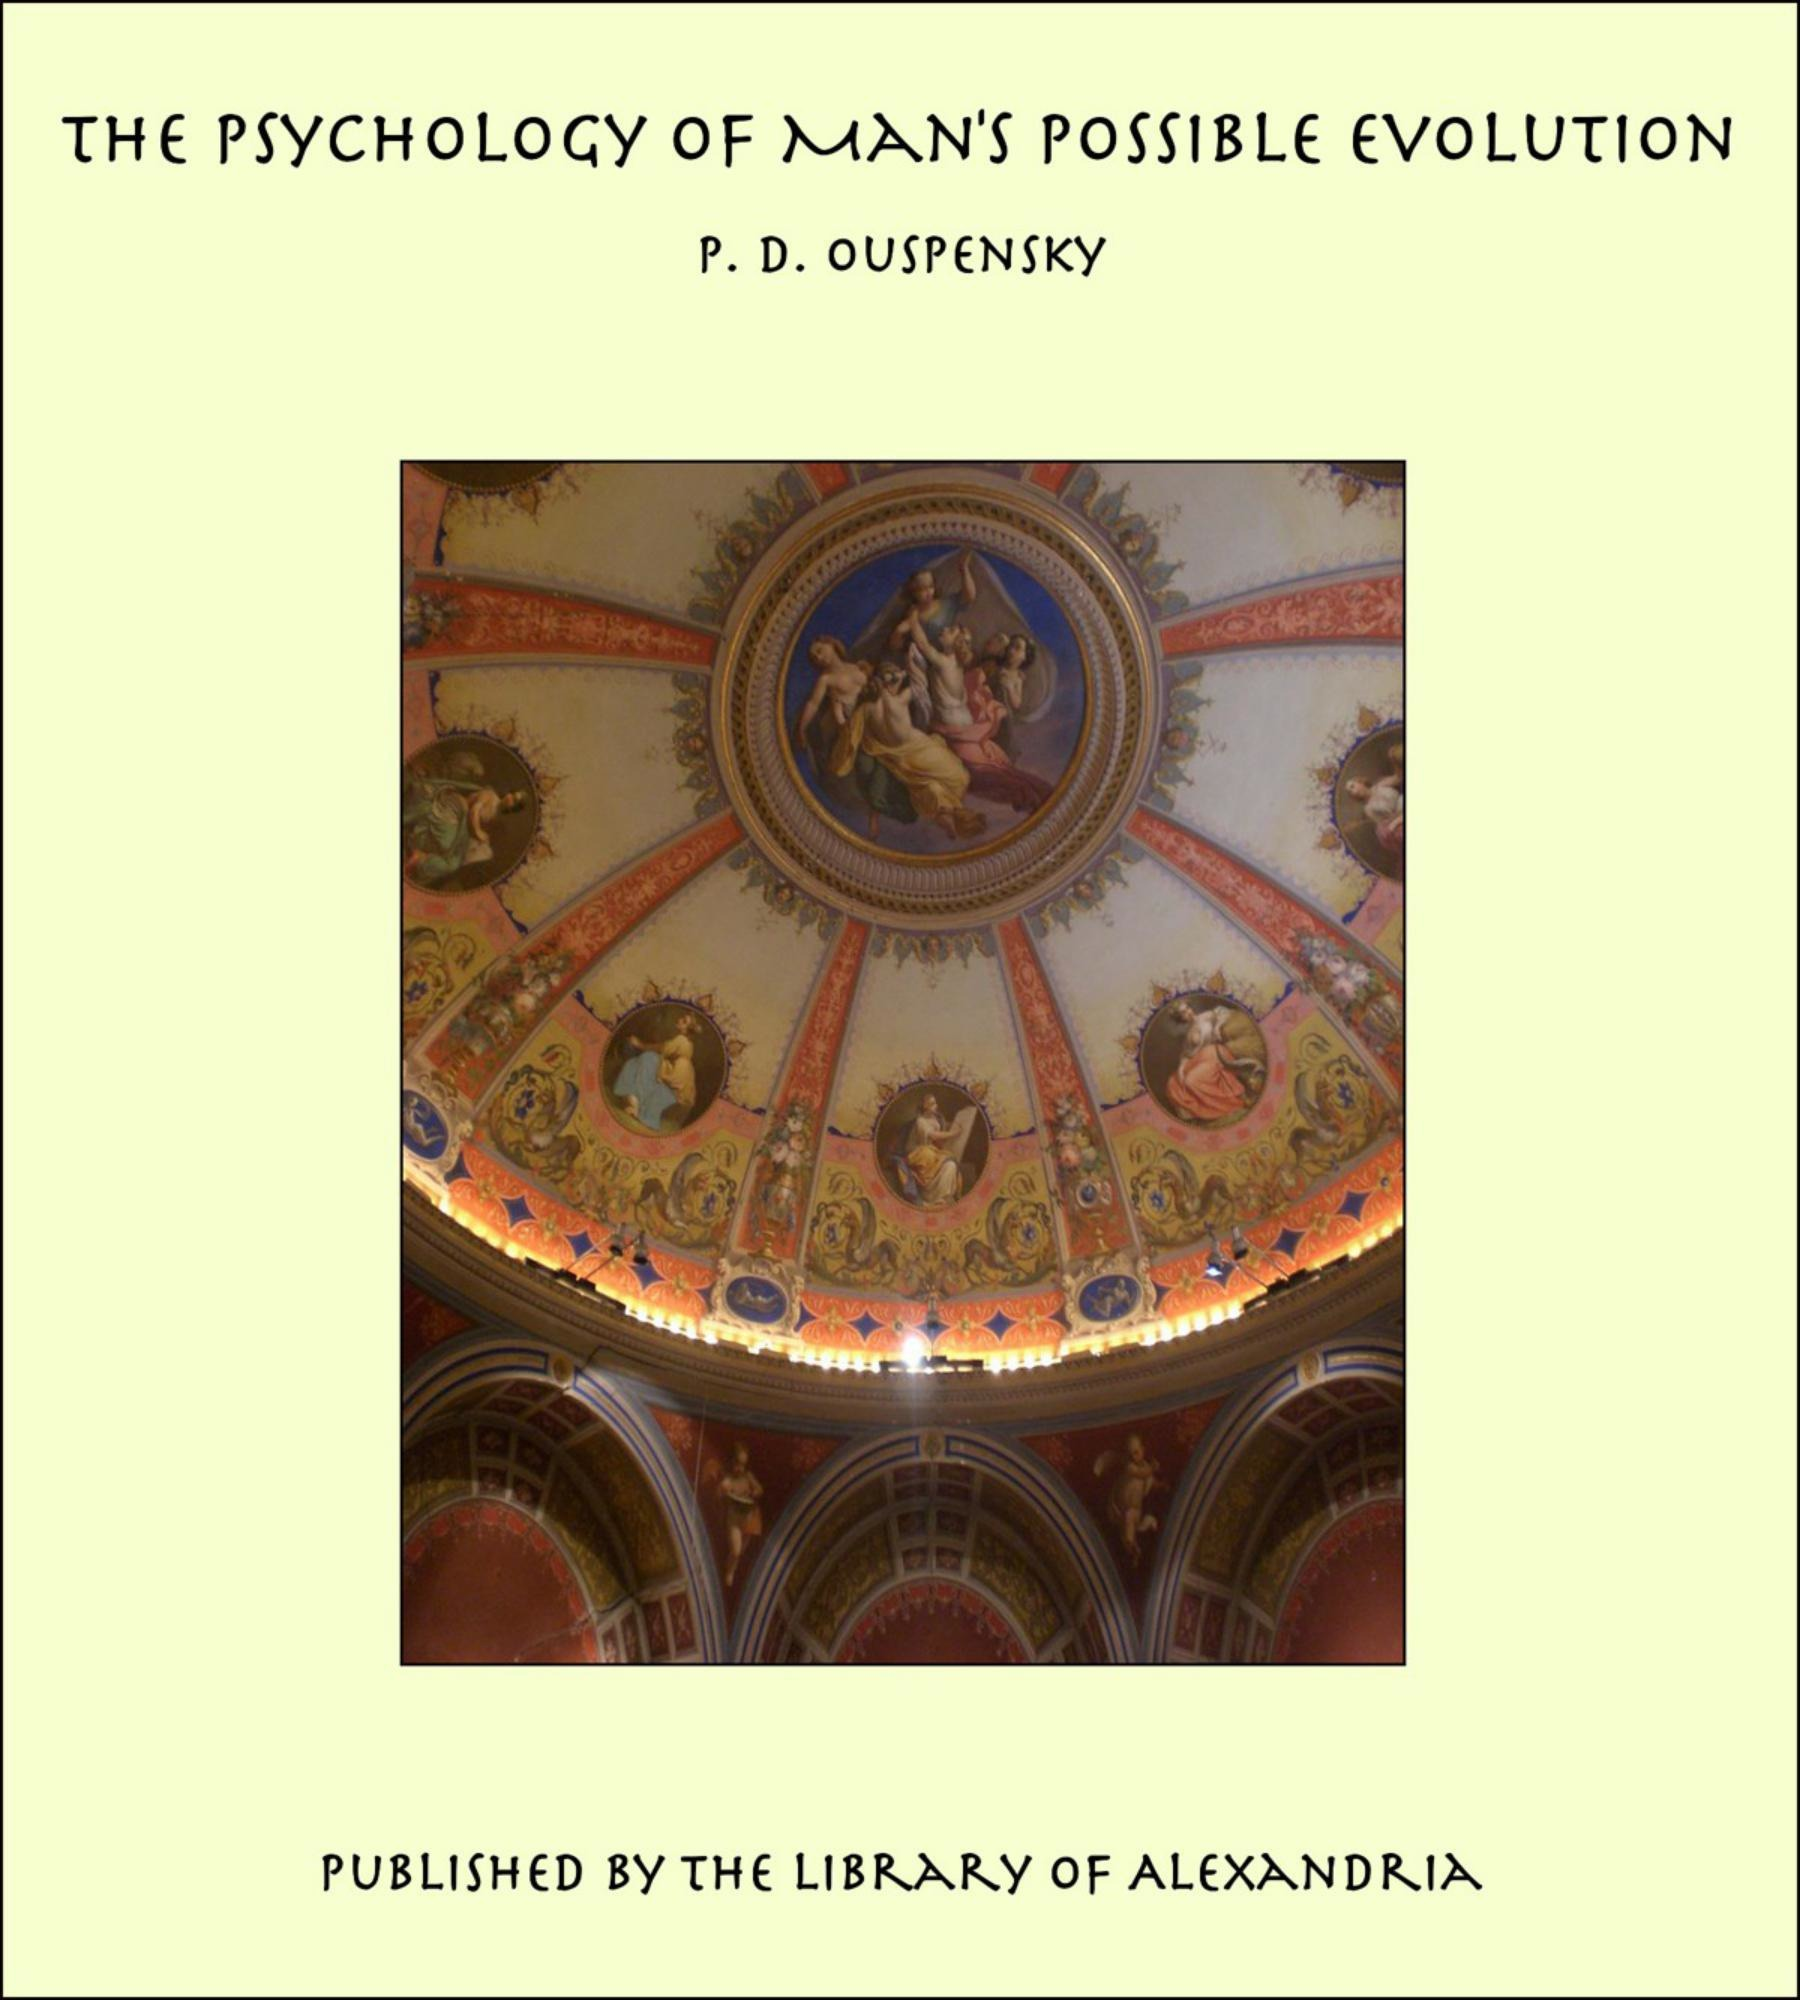 The Psychology of Man's Possible Evolution By: P. D. Ouspensky